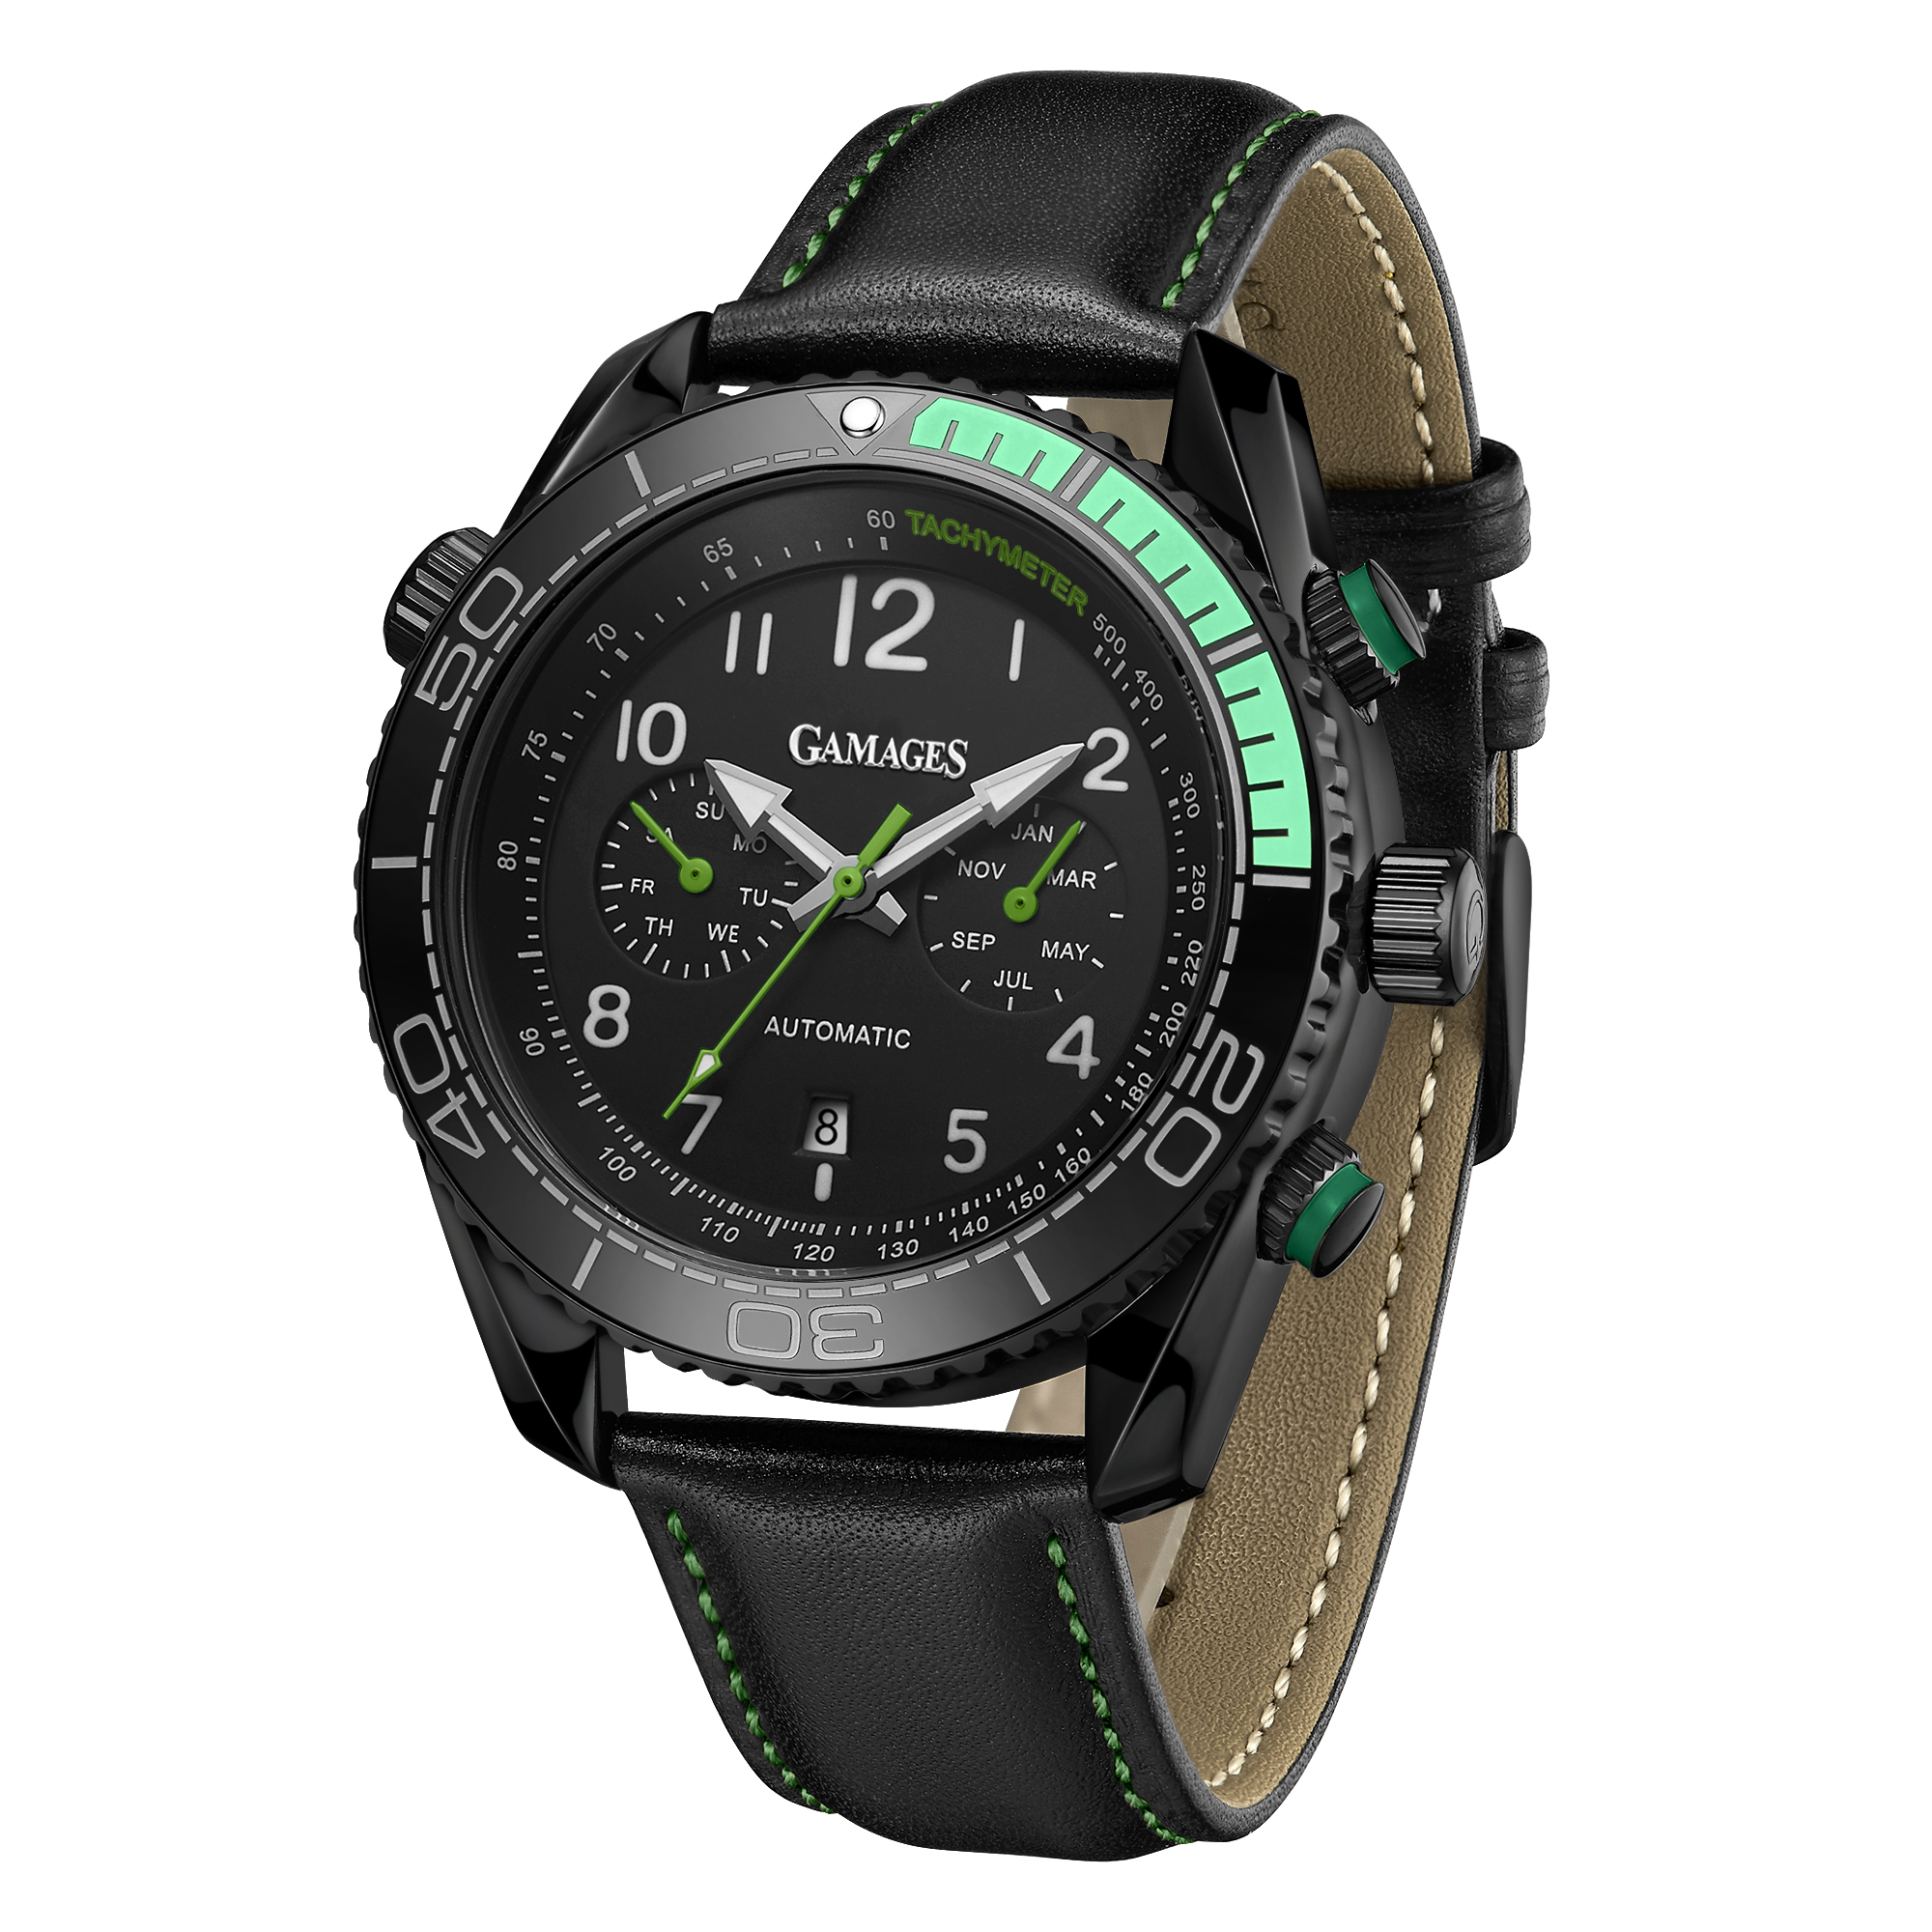 Limited Edition Hand Assembled GAMAGES Supreme Automatic Green – 5 Year Warranty & Free Delivery - Image 5 of 7